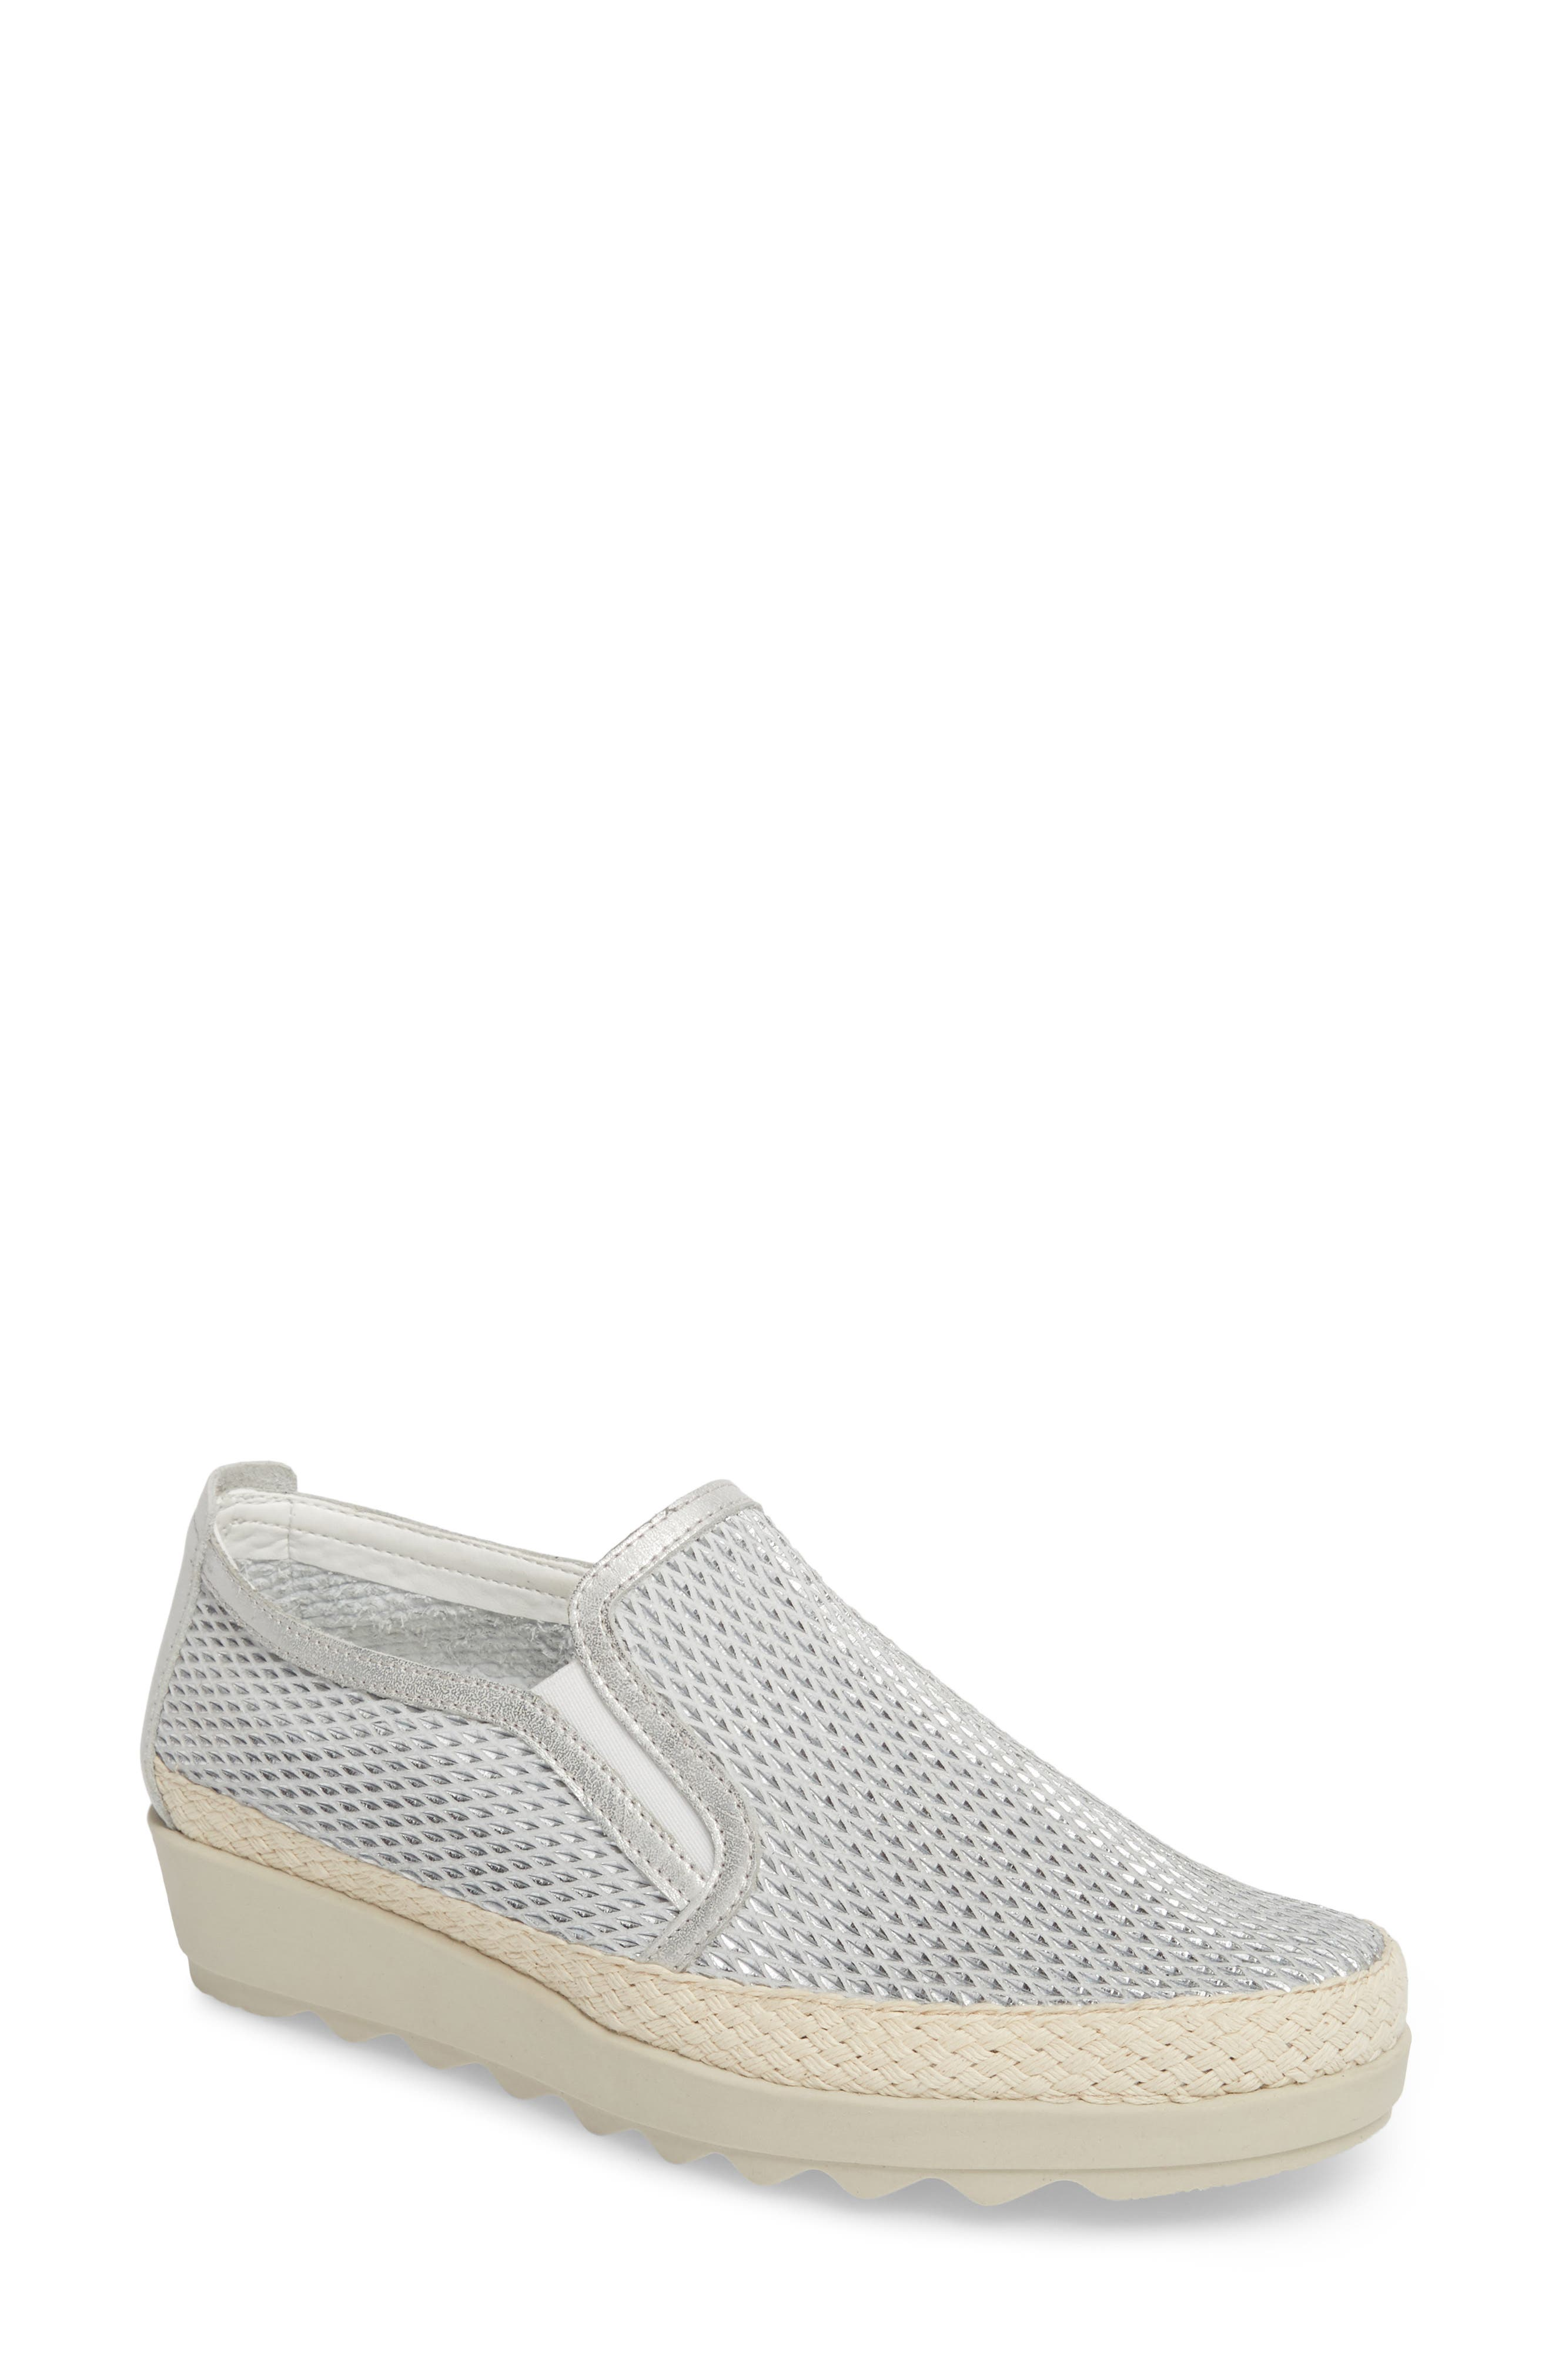 Call Me Perforated Slip-On Sneaker,                             Main thumbnail 1, color,                             White/ Silver Leather